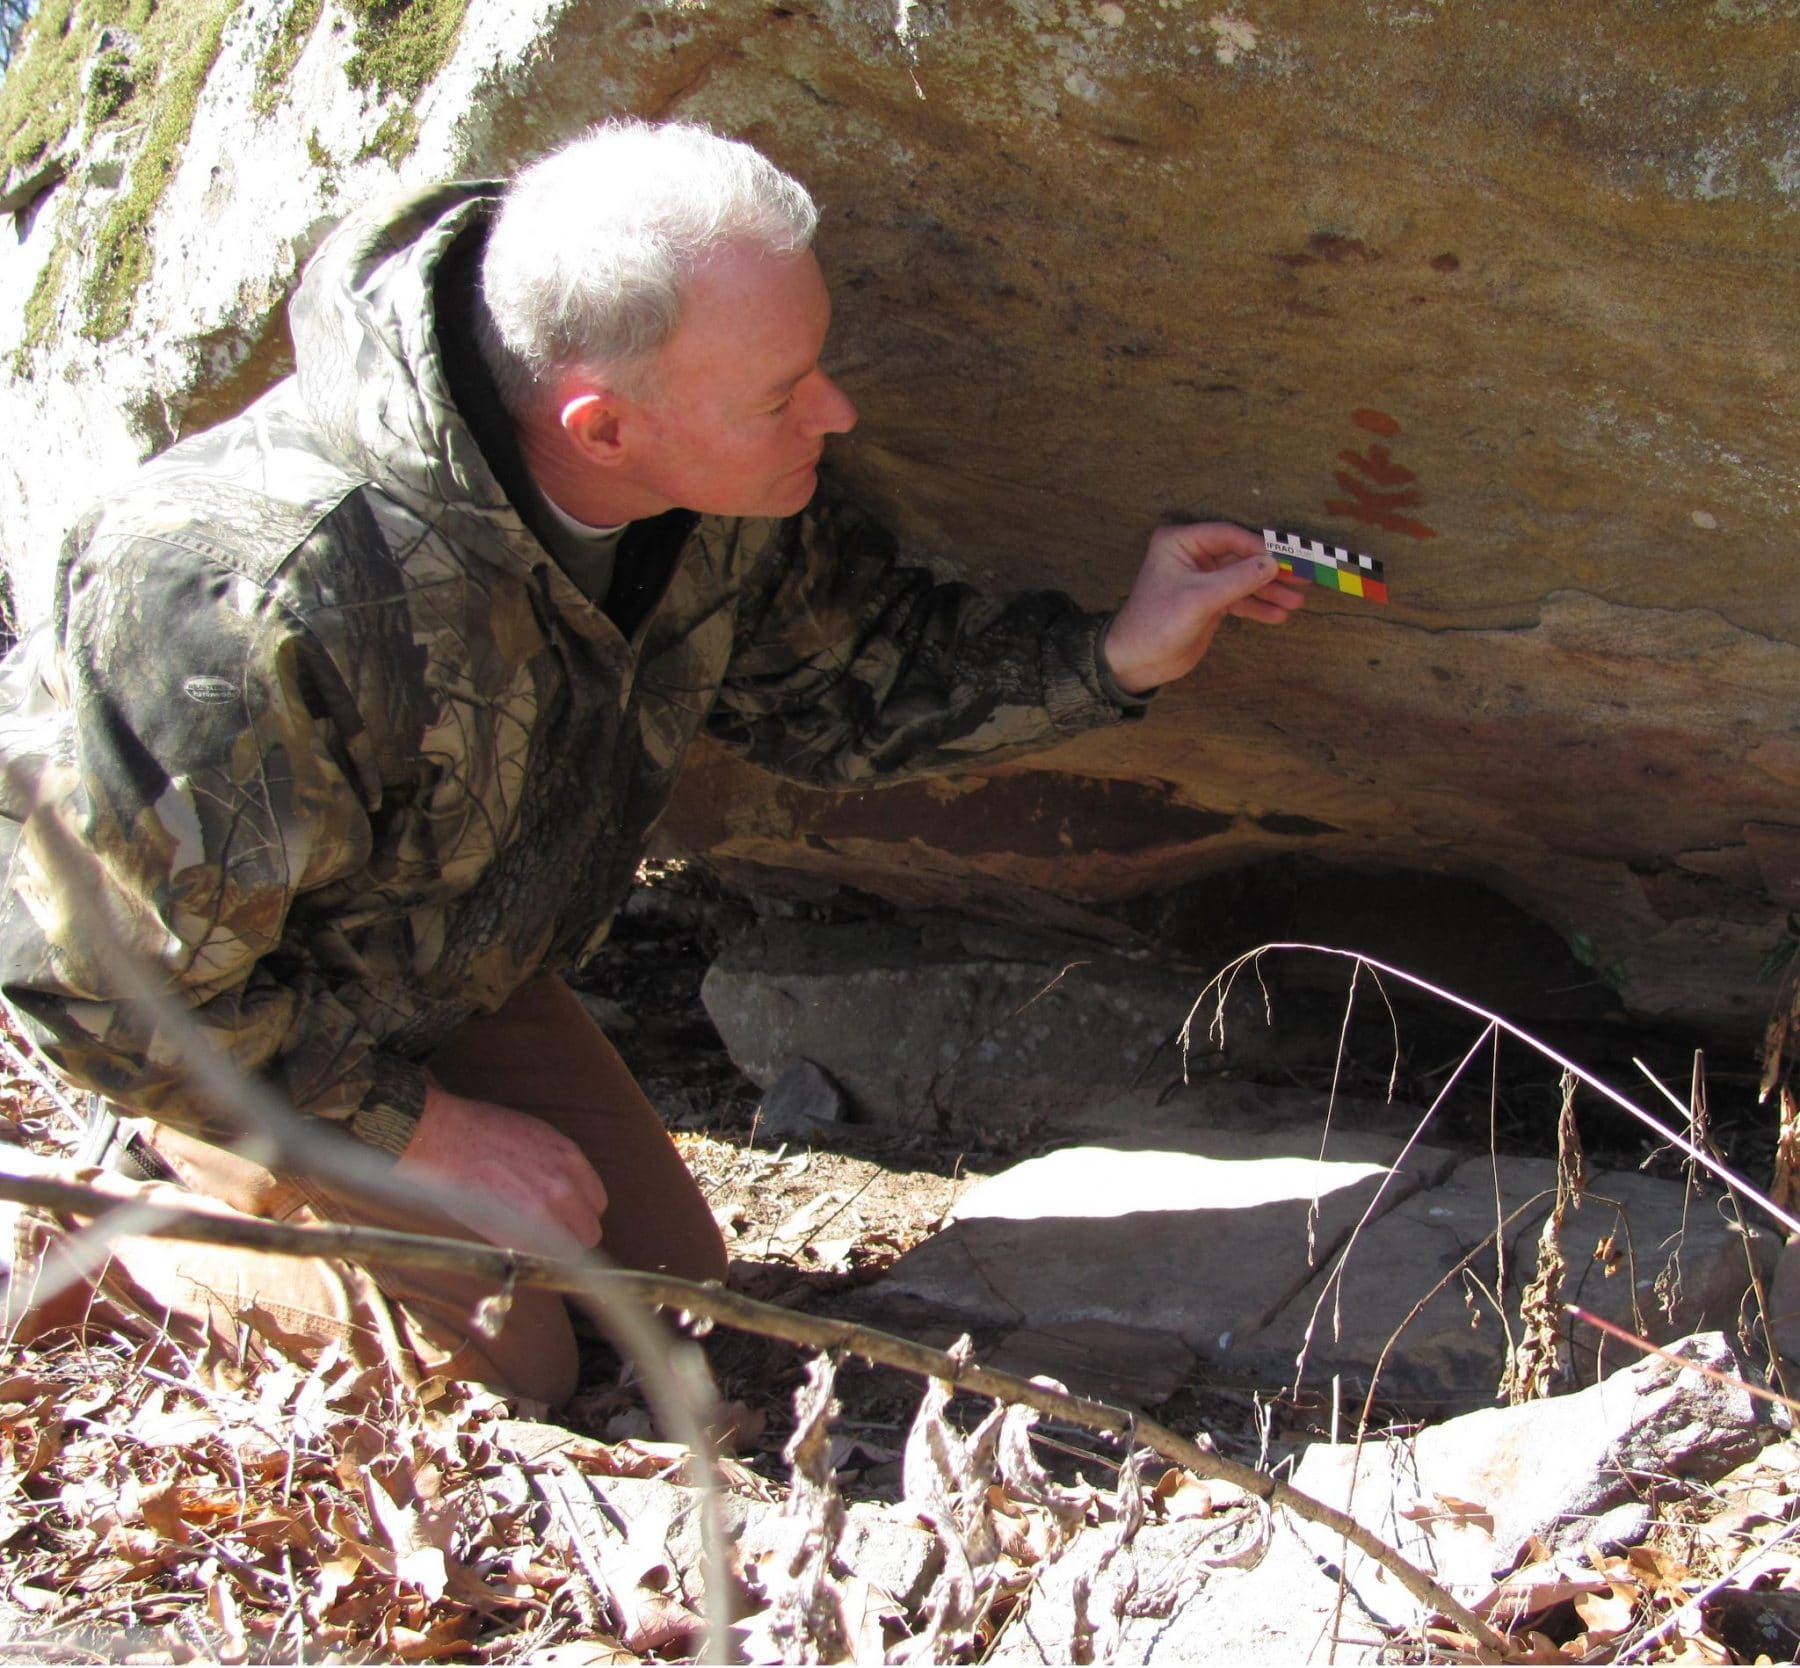 don higgins to talk about arkansas rock art